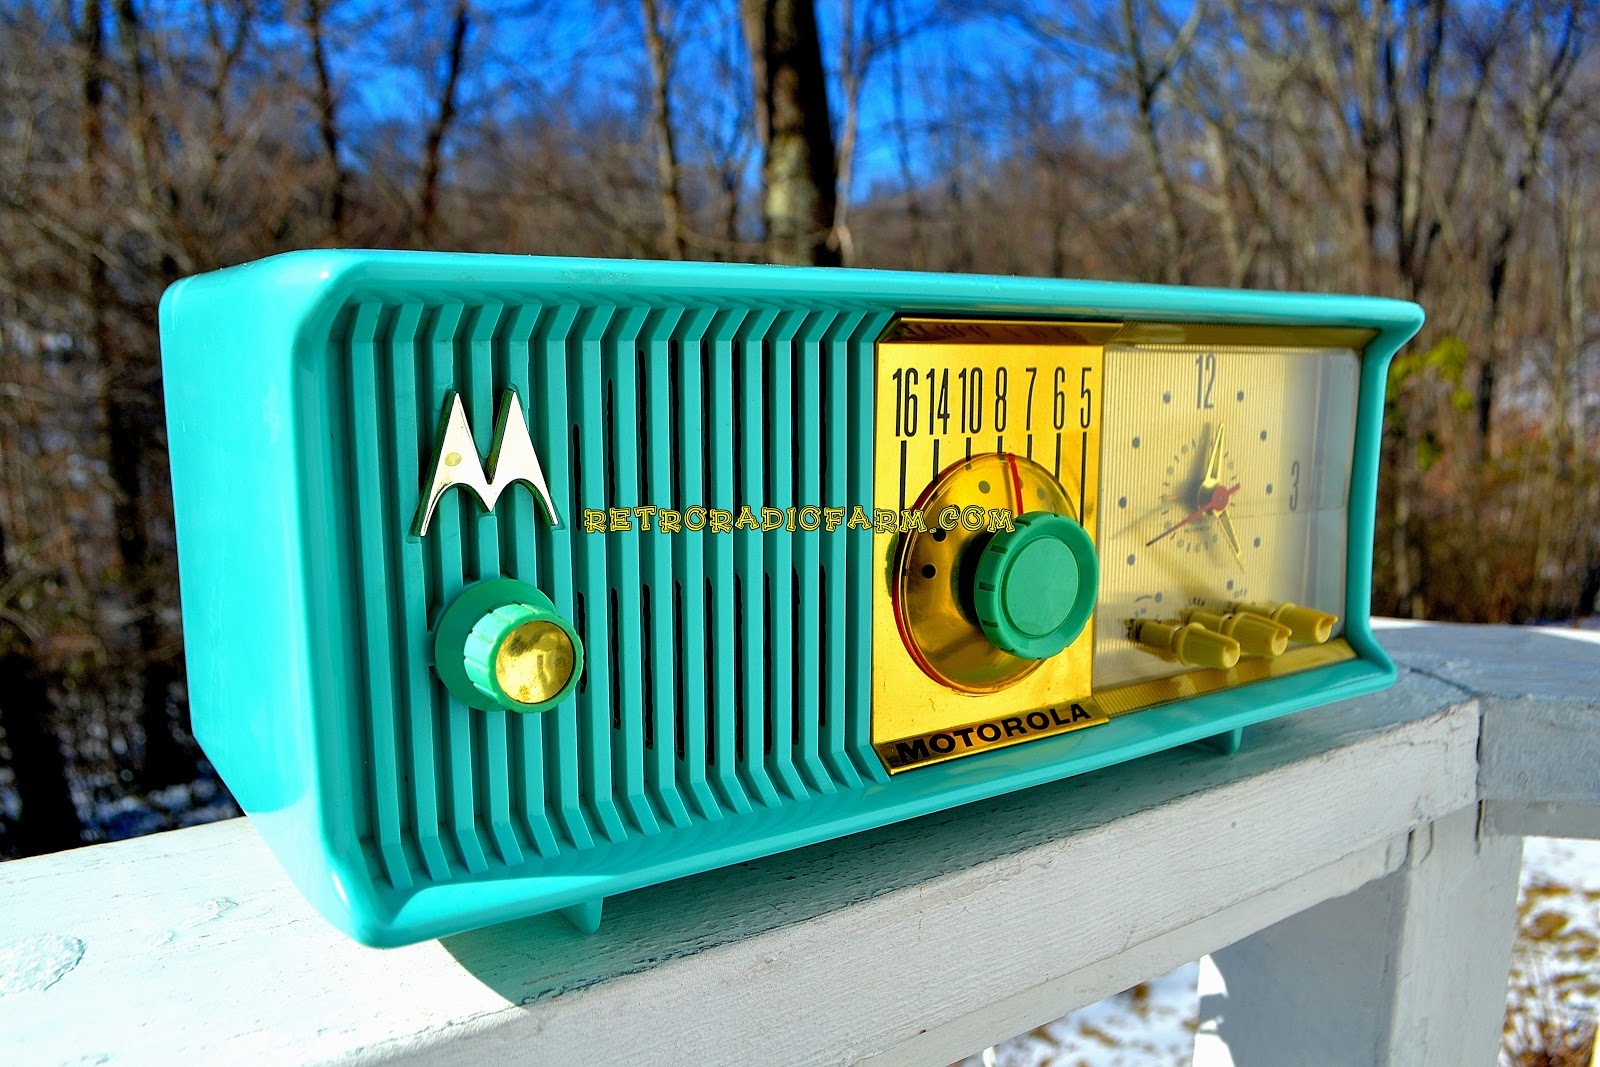 Finding and Repairing Retro Radios Turned into a Successful Side